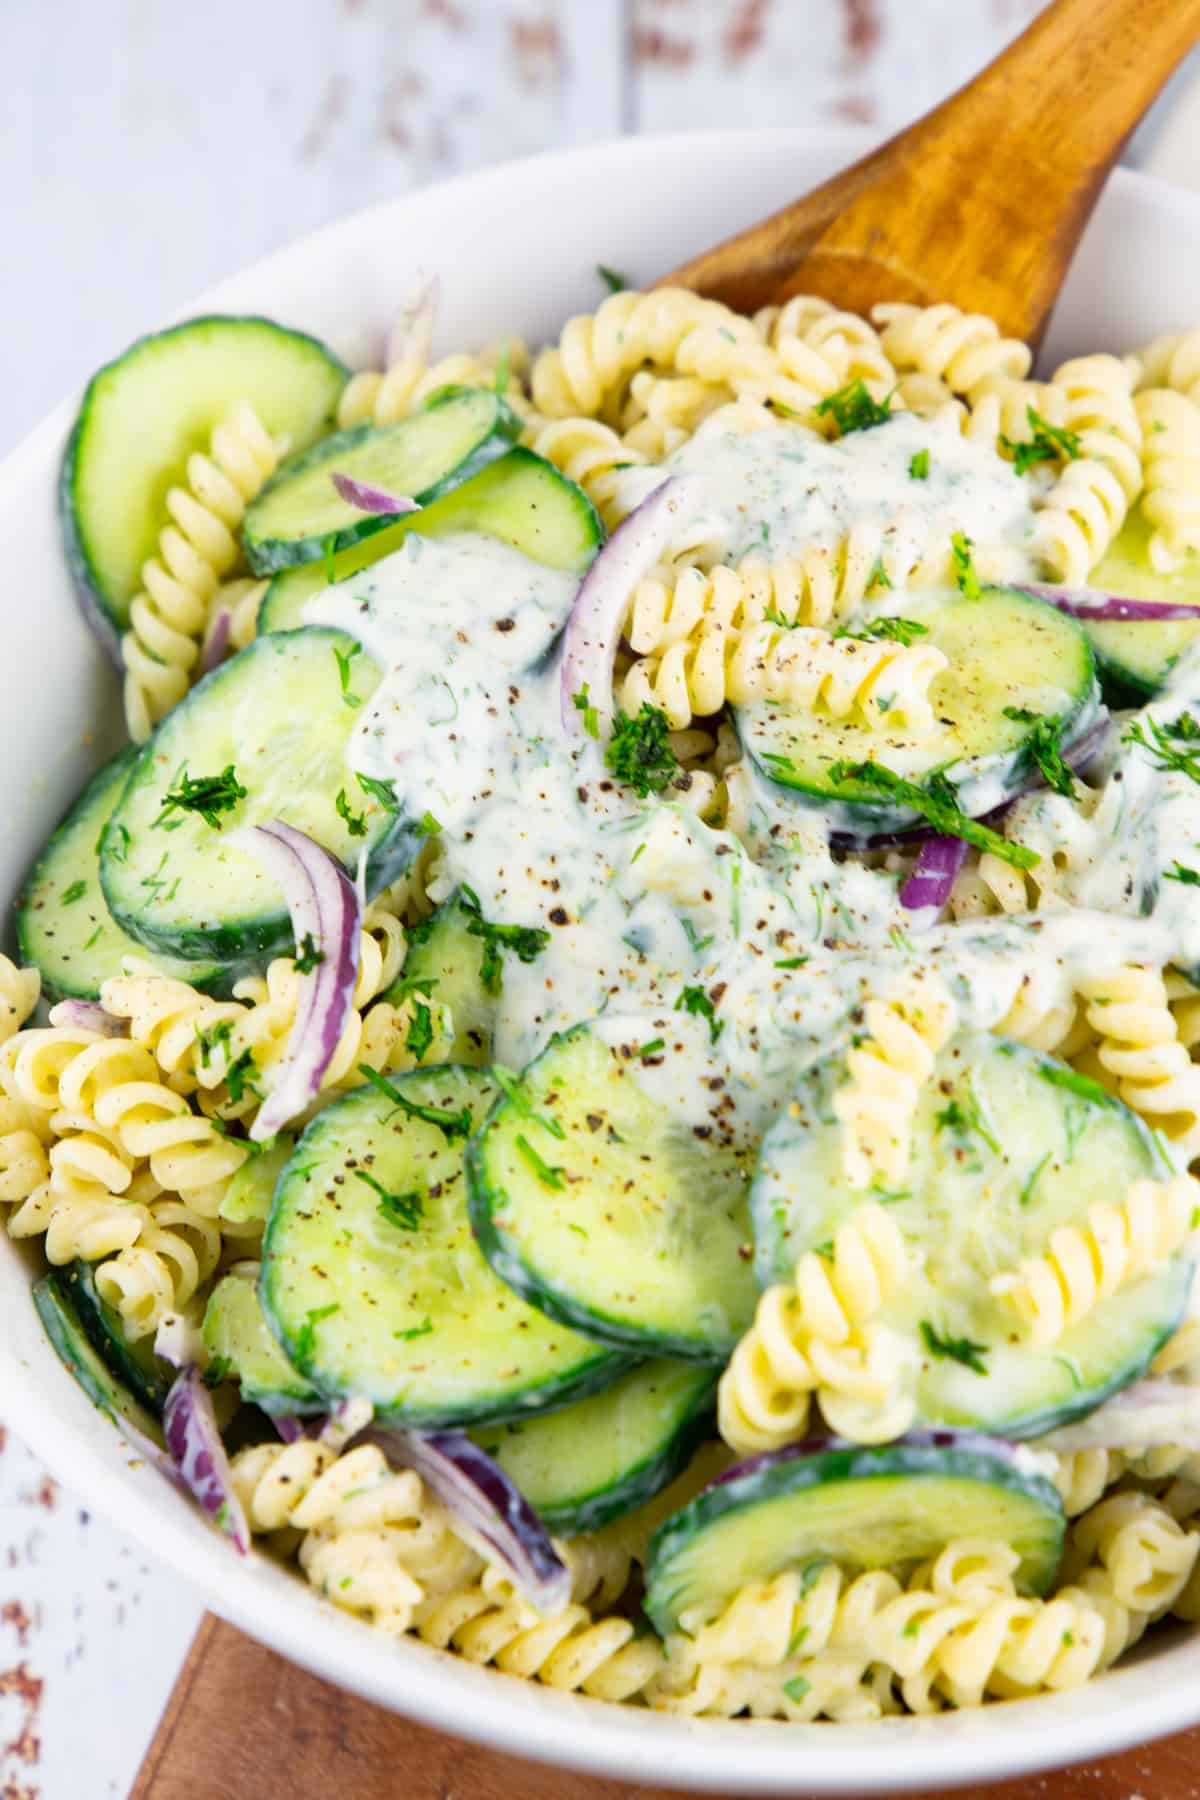 close-up of a cucumber pasta salad in a white bowl on a wooden board